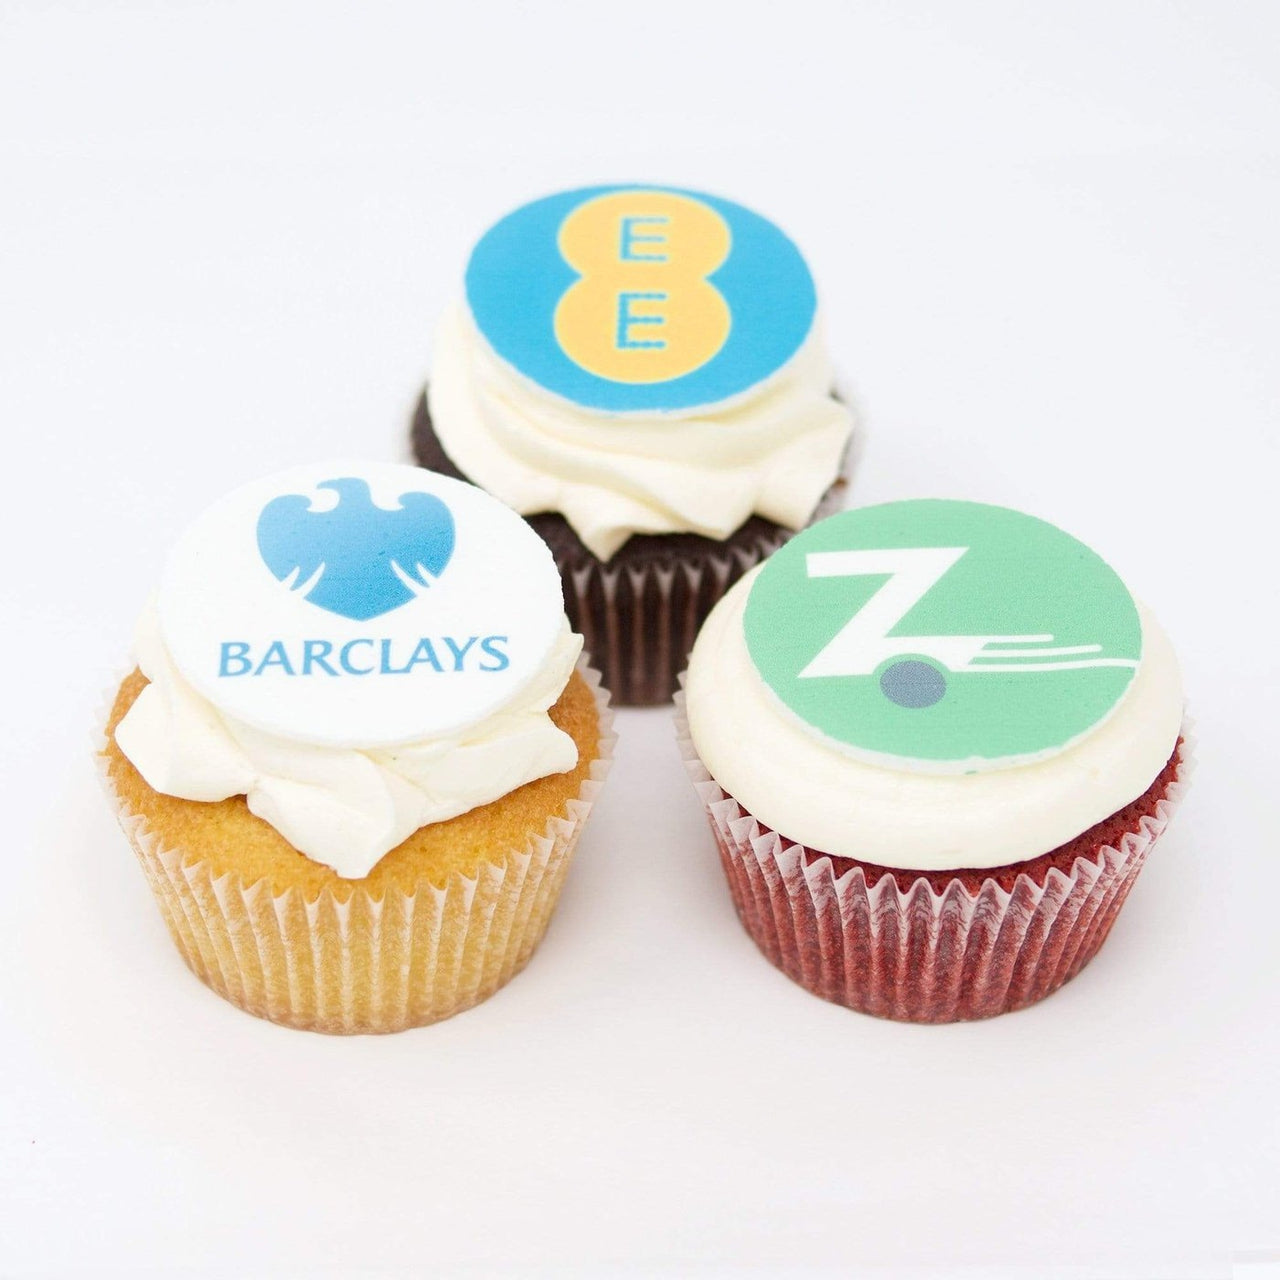 Mixed Flavour Cupcakes with logos